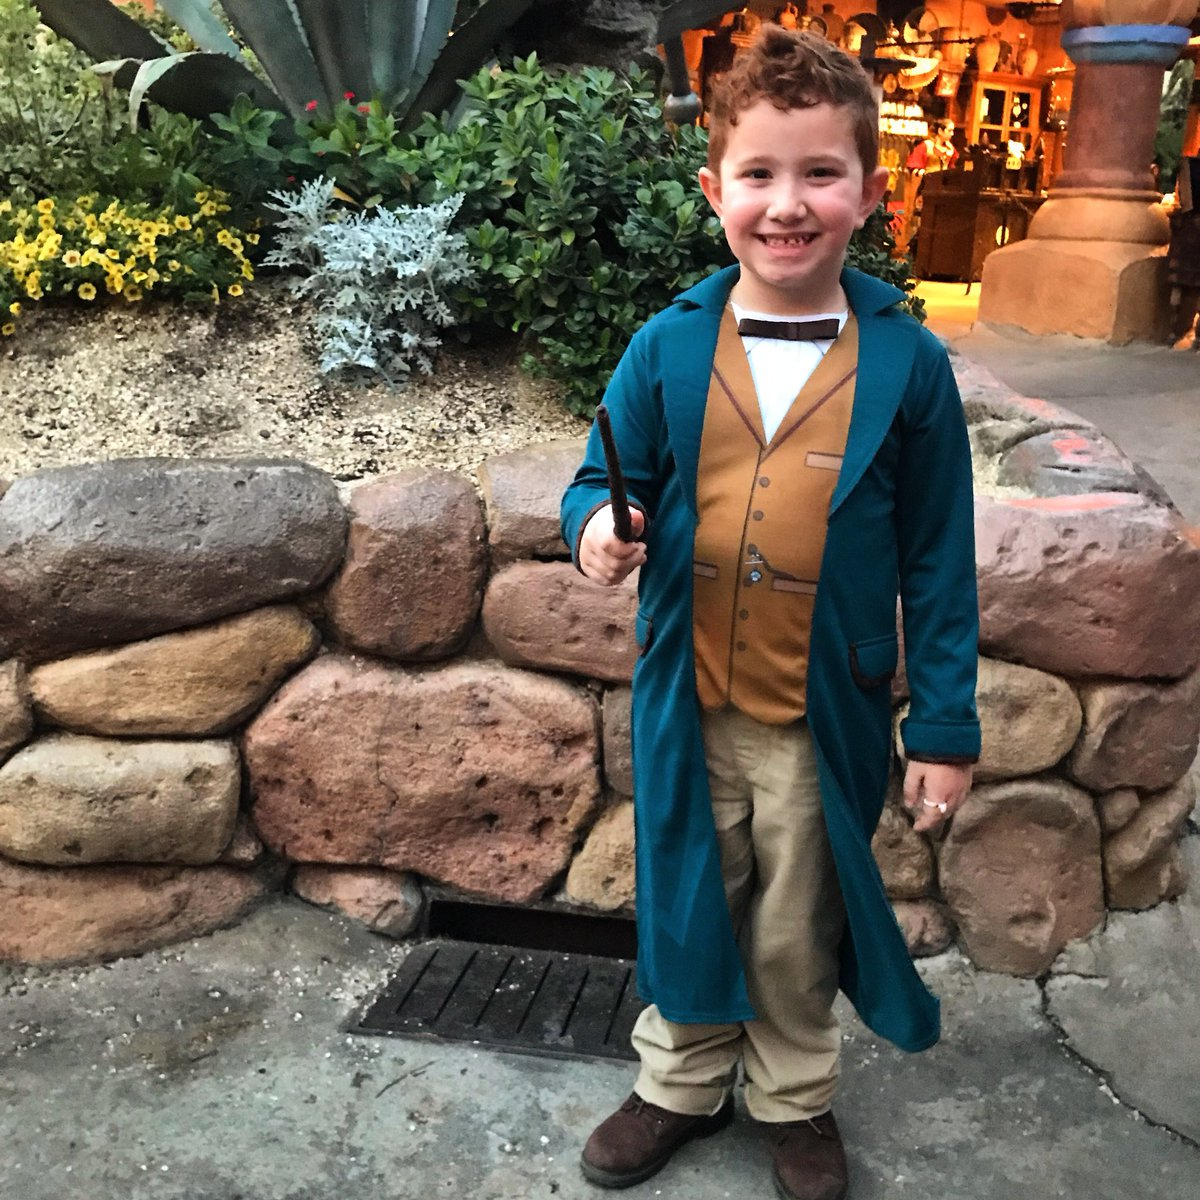 Mini-Newt welcomes you to Day 2 of #Fant...